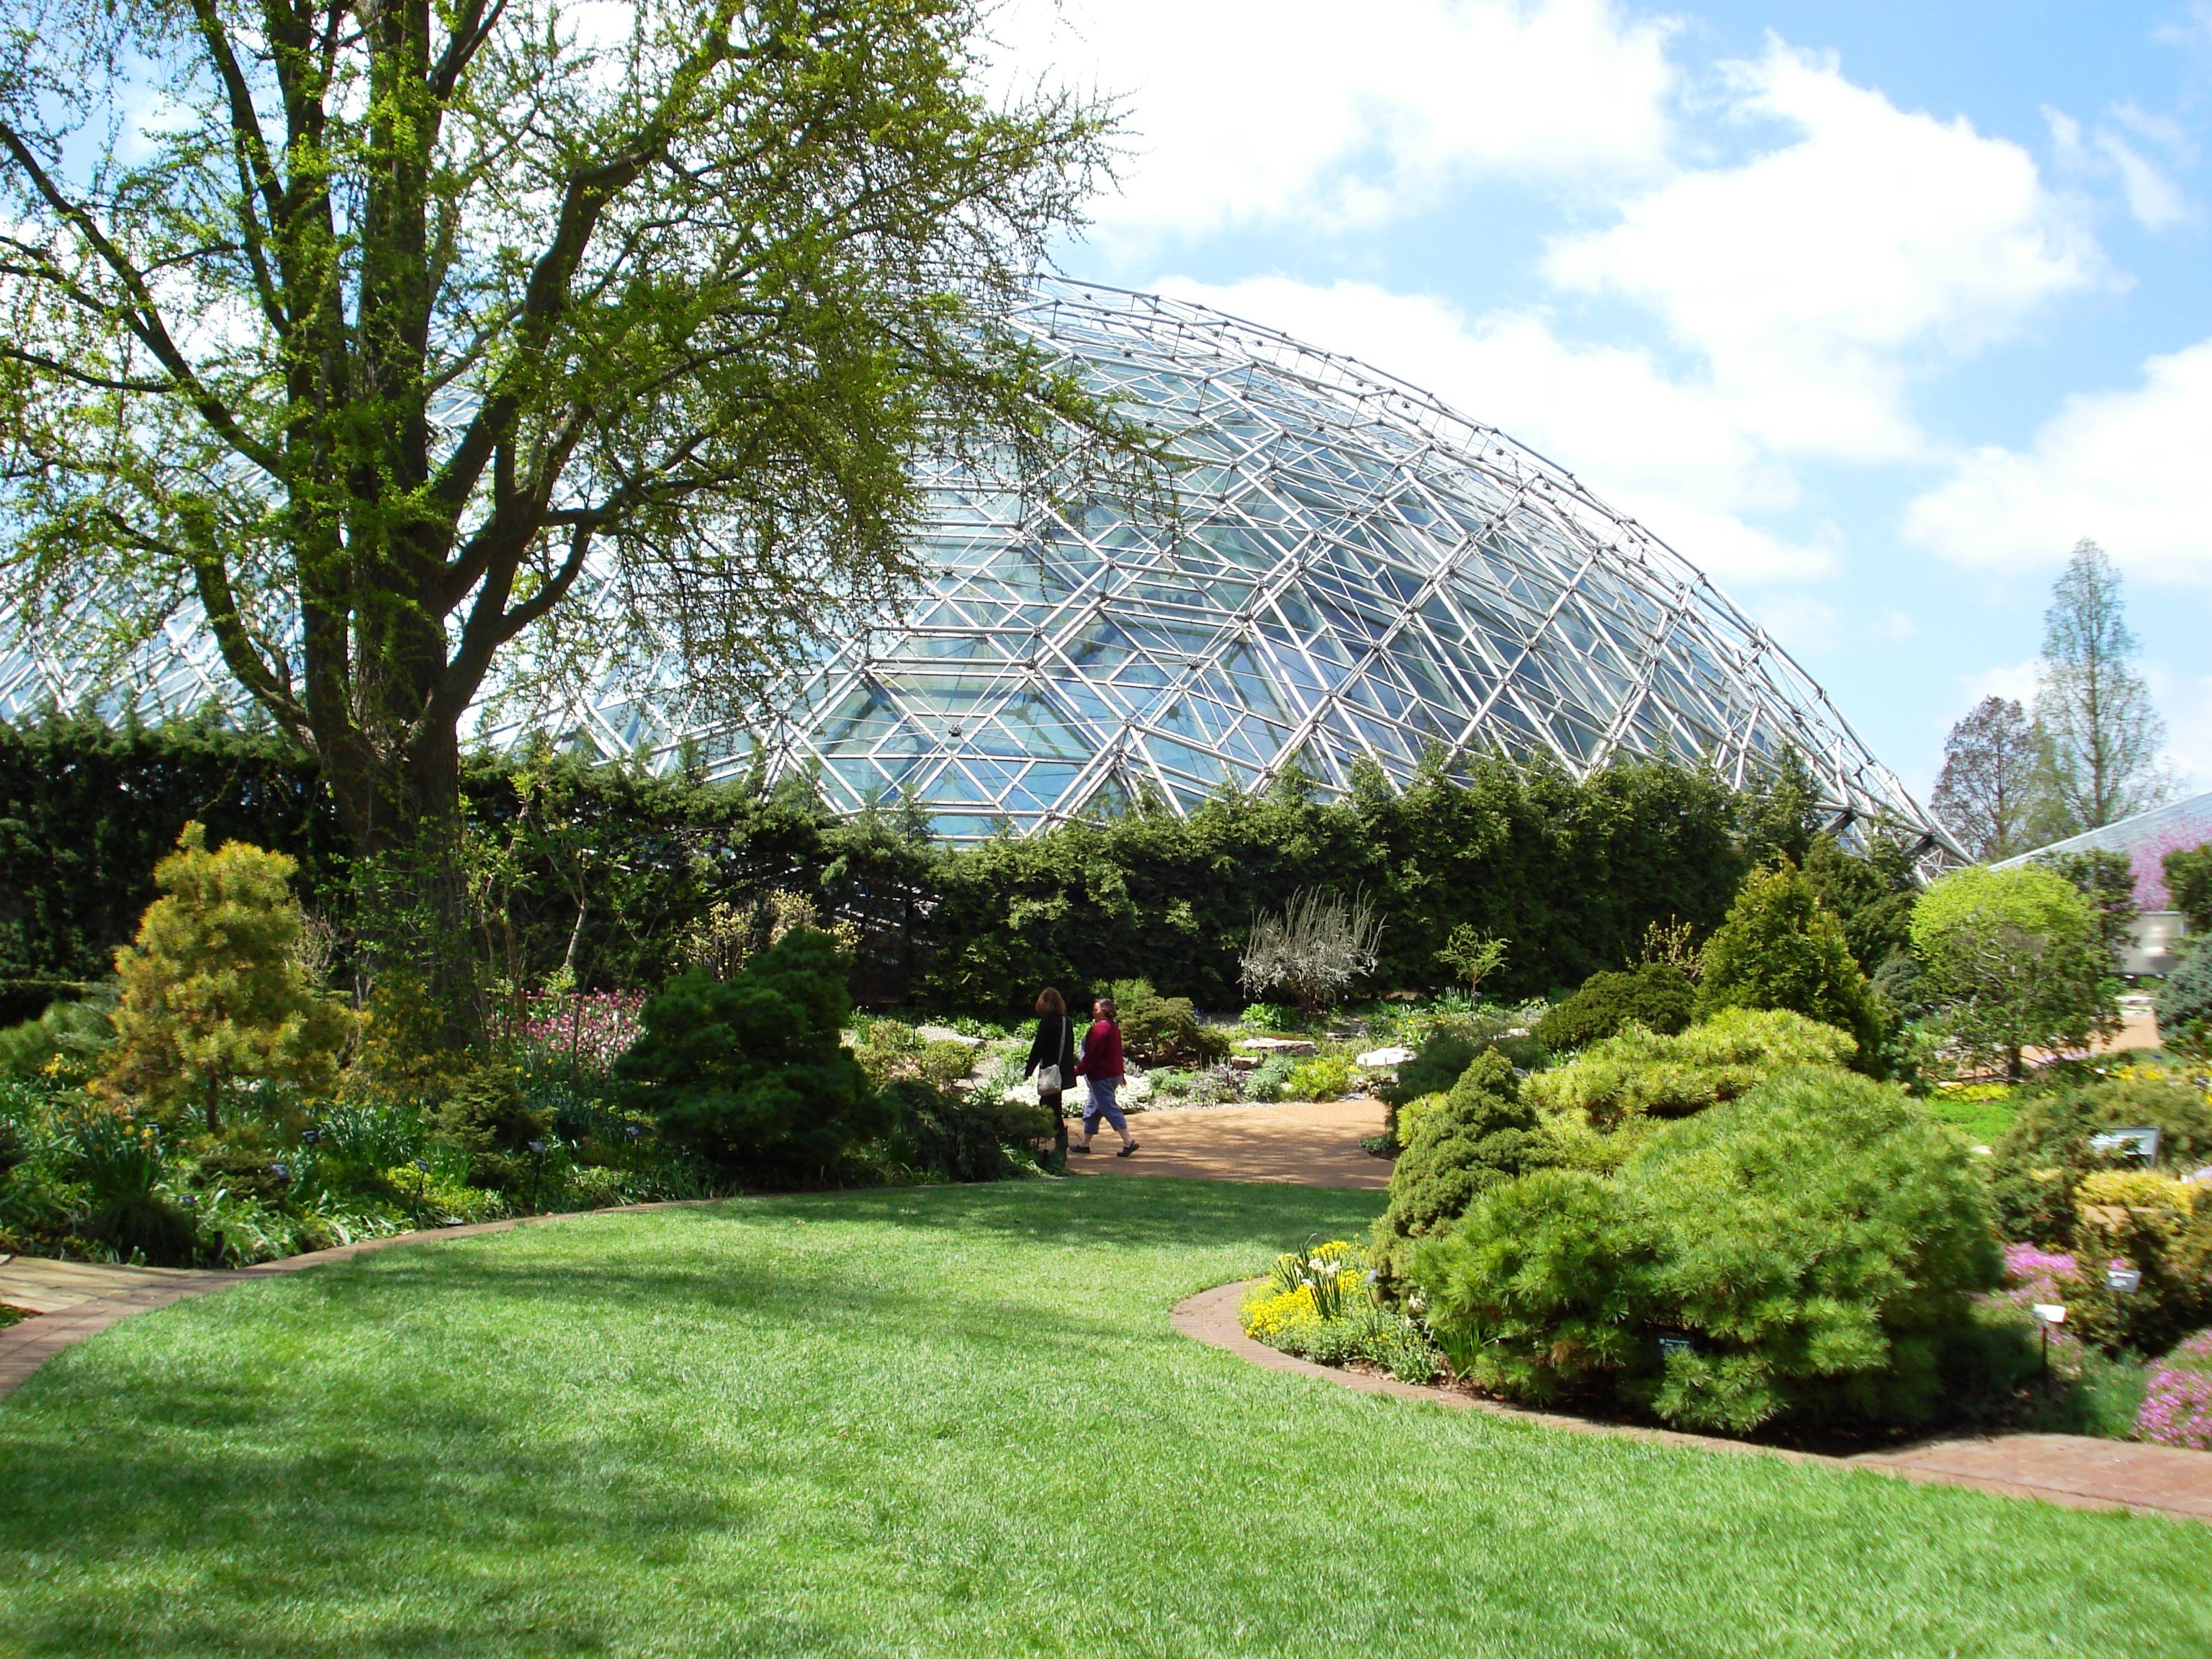 Founded in 1859, the Missouri Botanical Garden is the